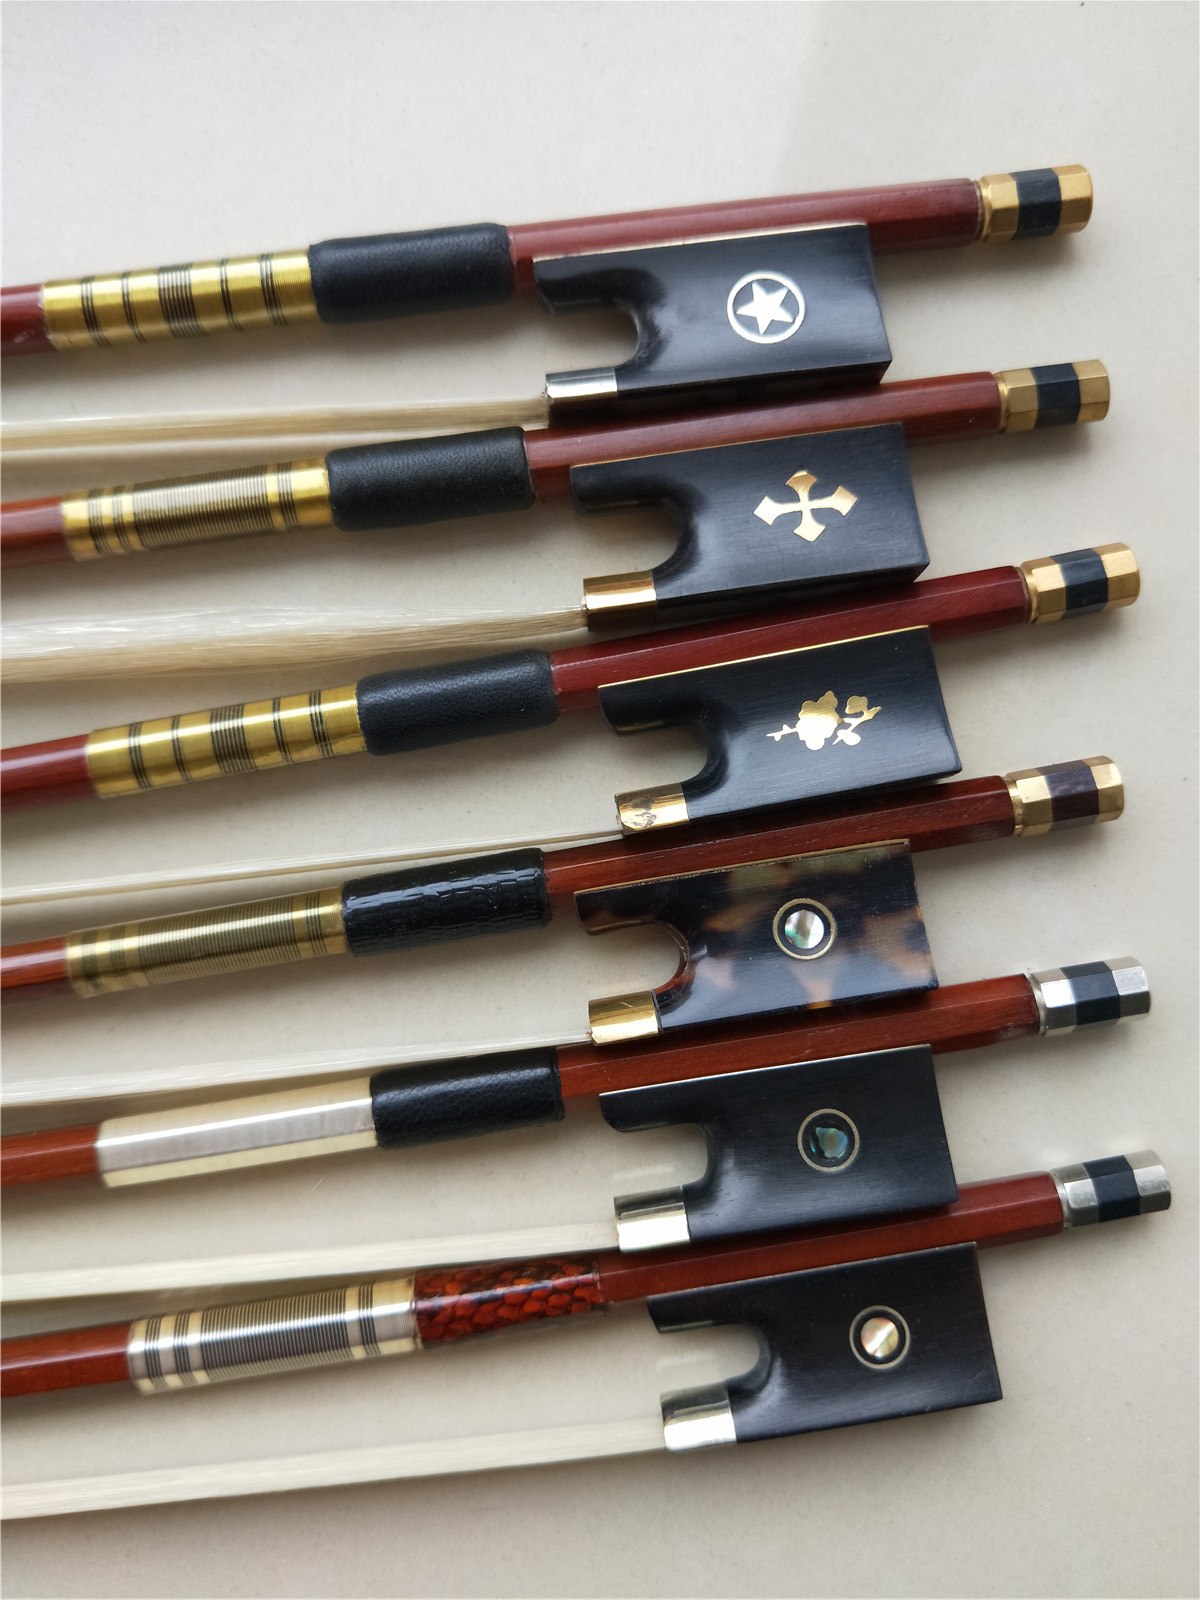 1 PC Violin Wood Bow 4/4 Brazil Wood Violin Bow Ebony Frog Hawksbill Frog White Stallion Horse Tail Hair high quality violin bow size 1 2 violin ebony wood bow top horse hair violin accessories bow accessories para violin with case